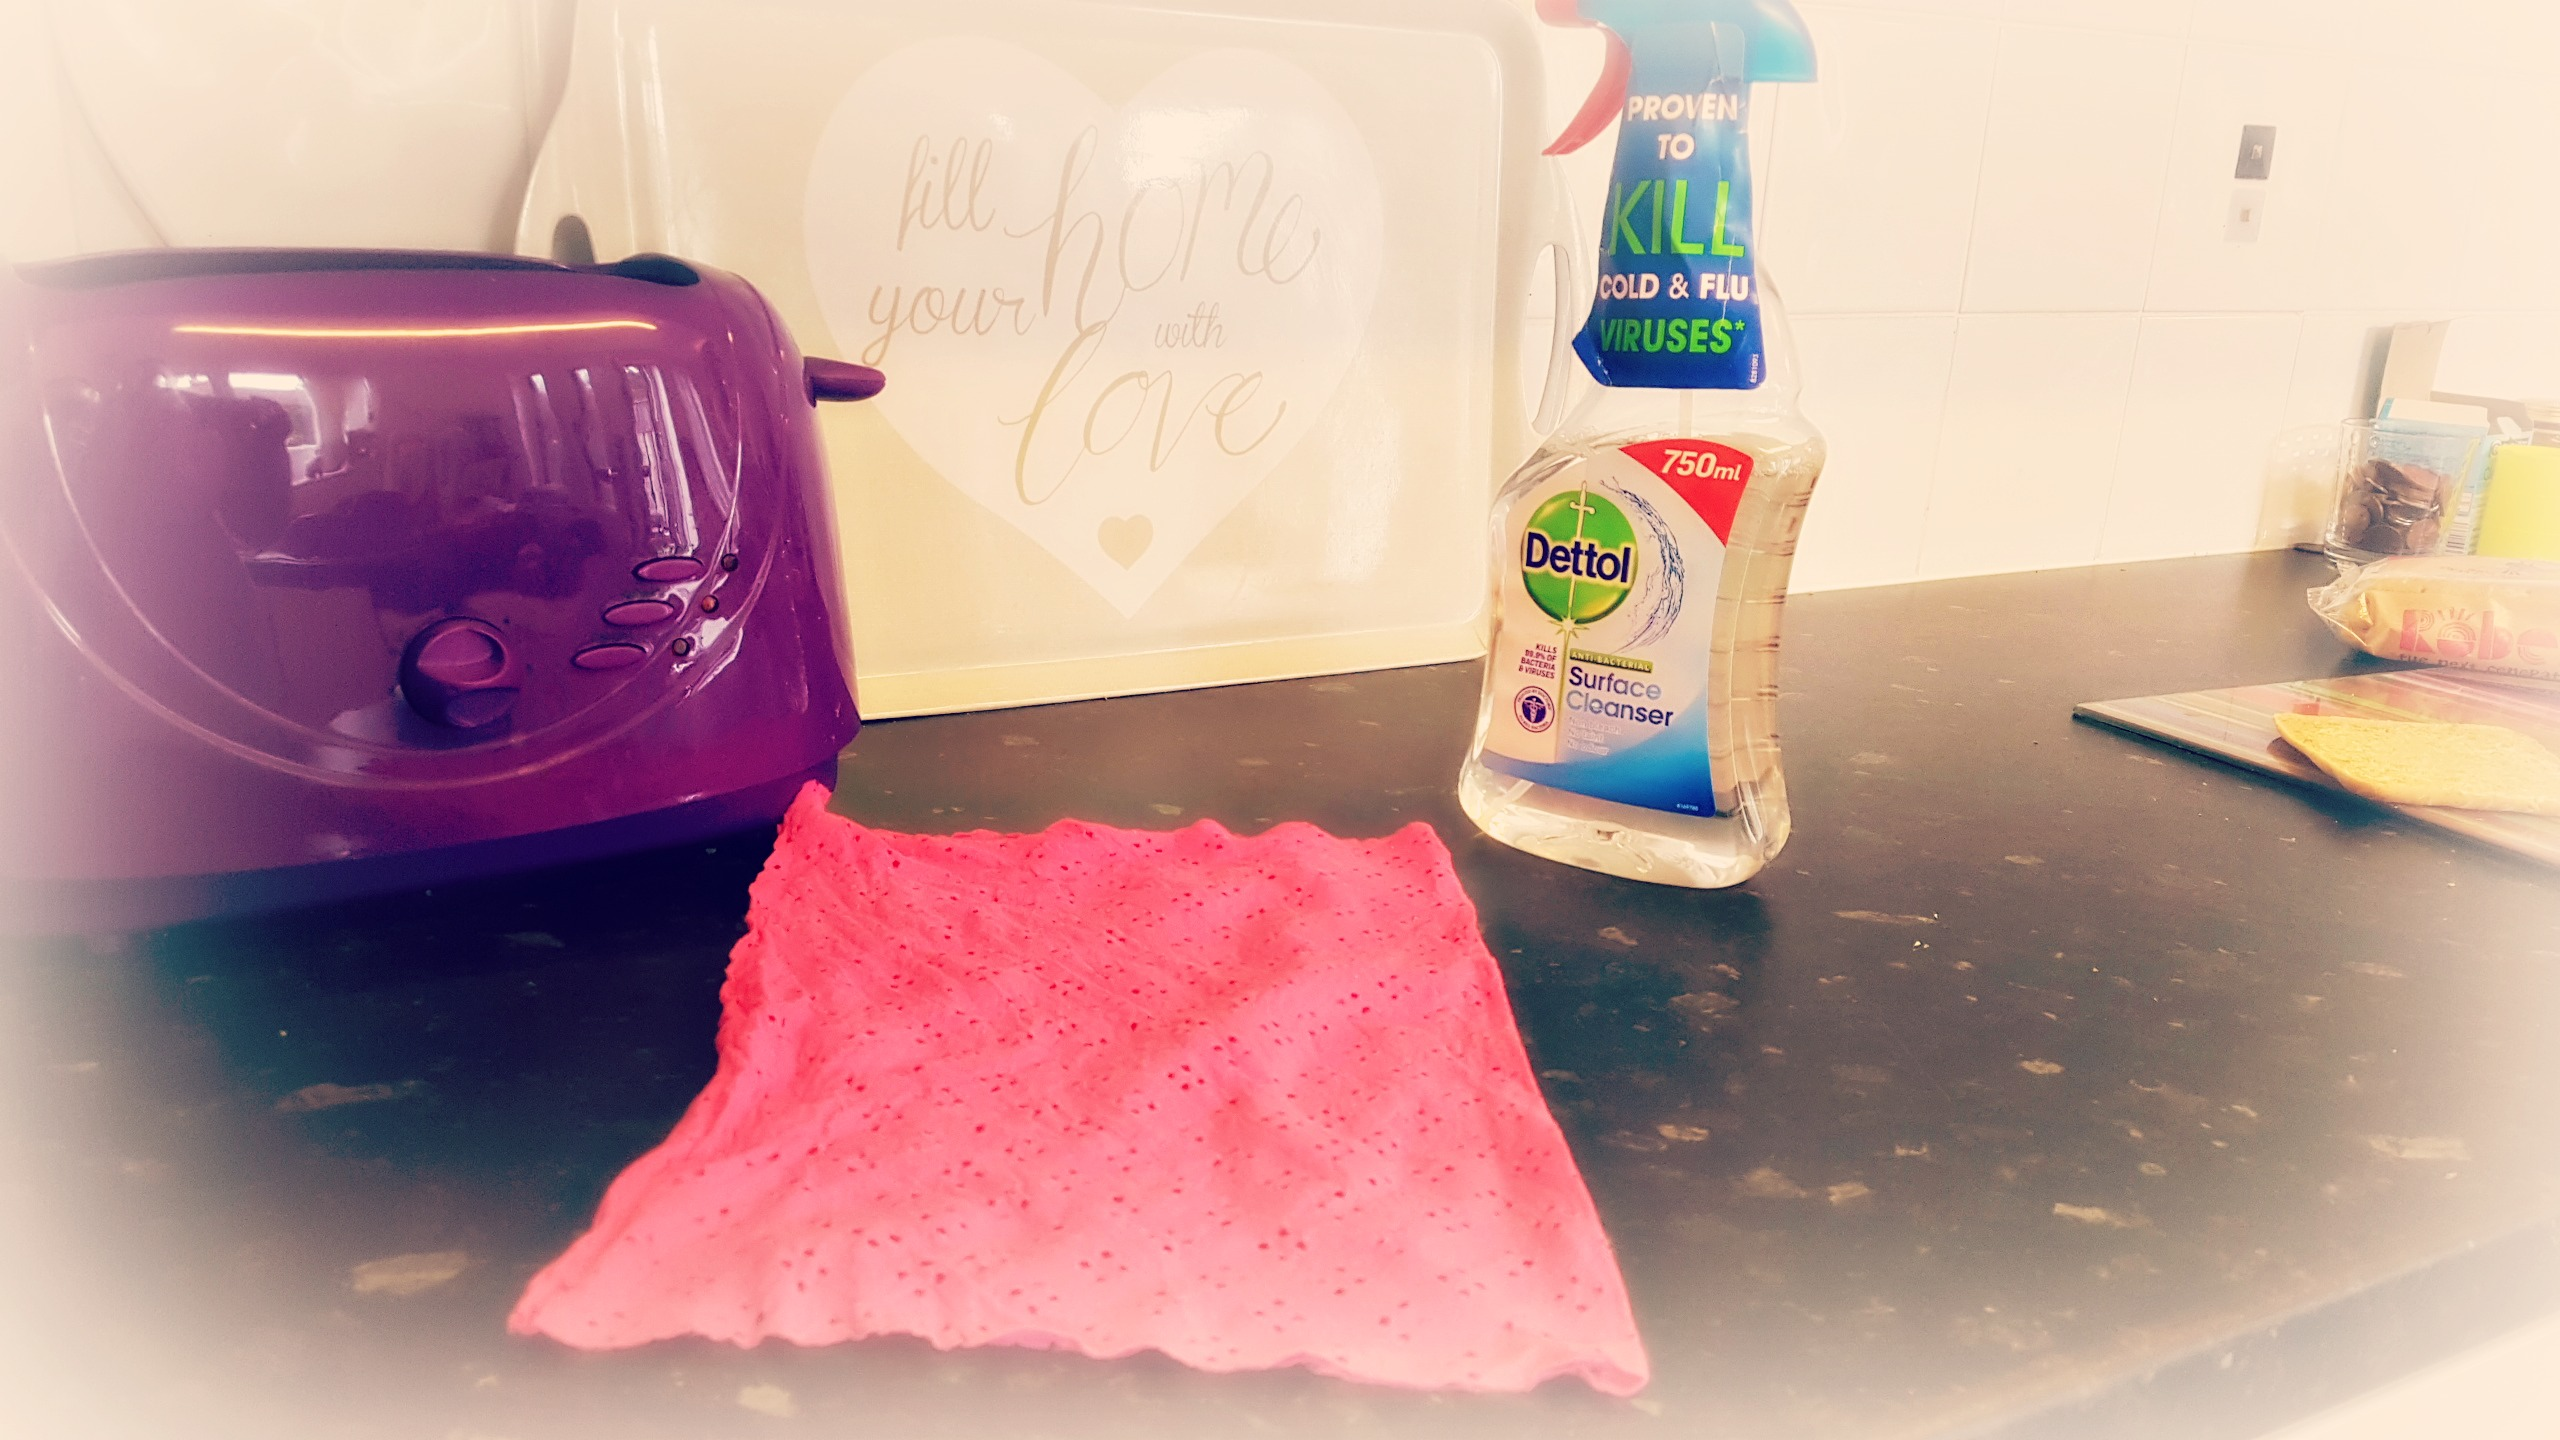 a kitchen sideboard with a purple toaster pink marigold cleaning cloth and bottle of dettol spray